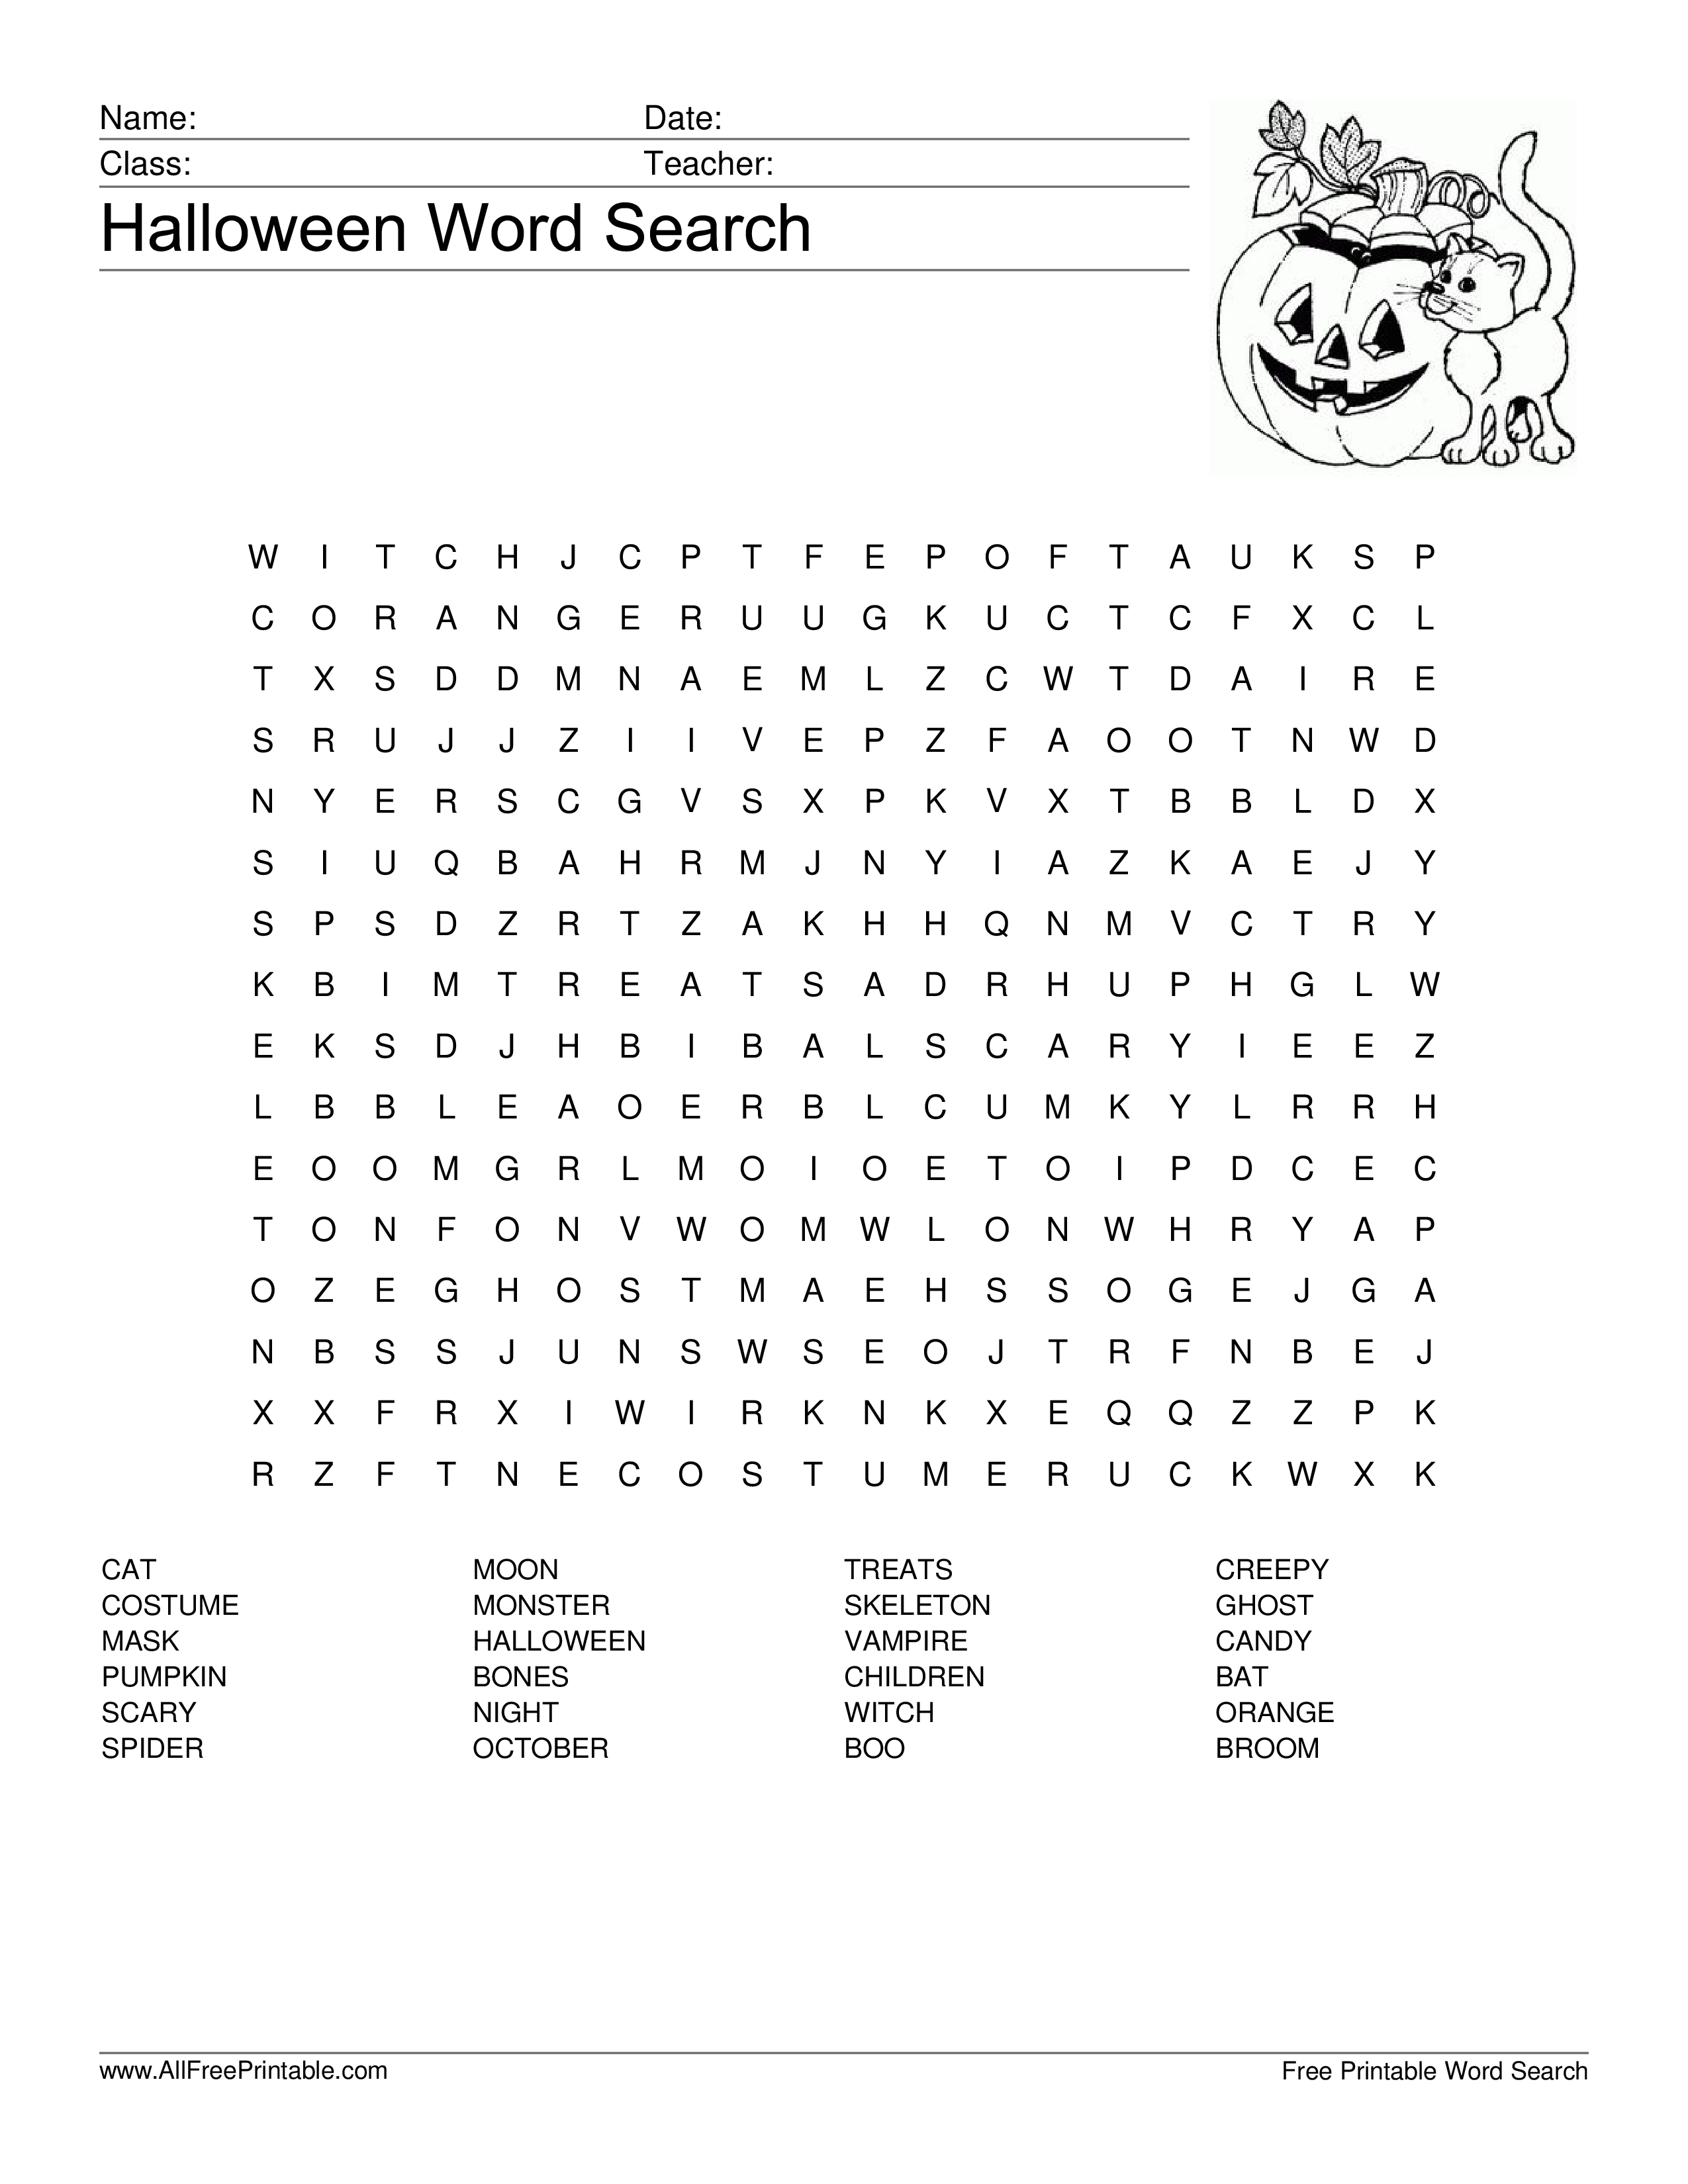 Halloween Word Search main image Download template